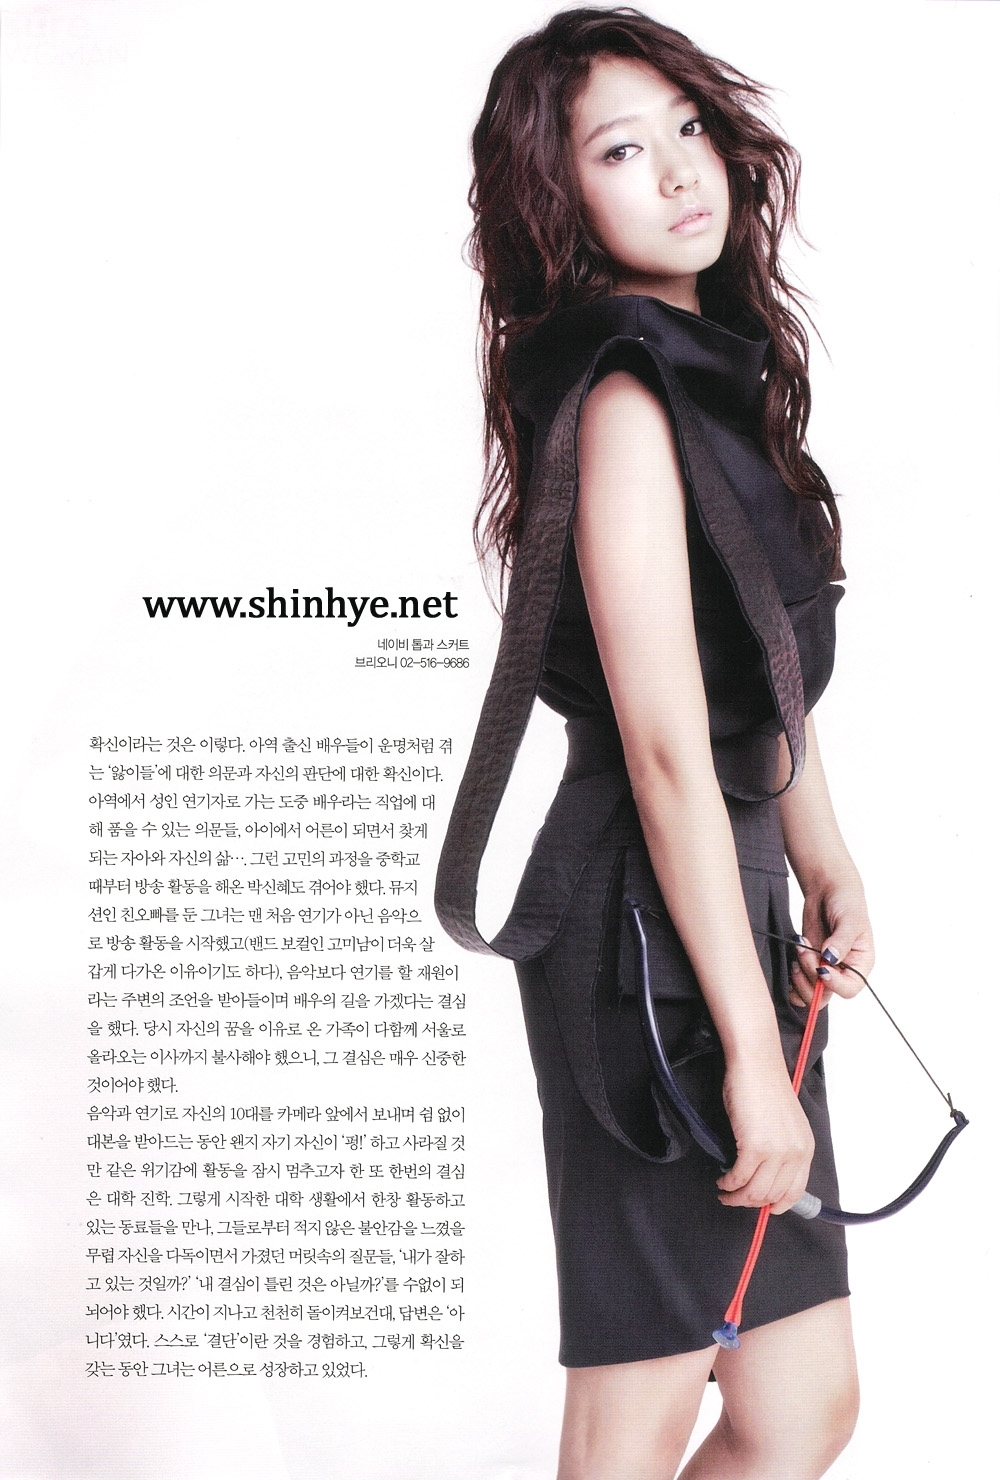 Park Shin Hye - Wallpaper Actress